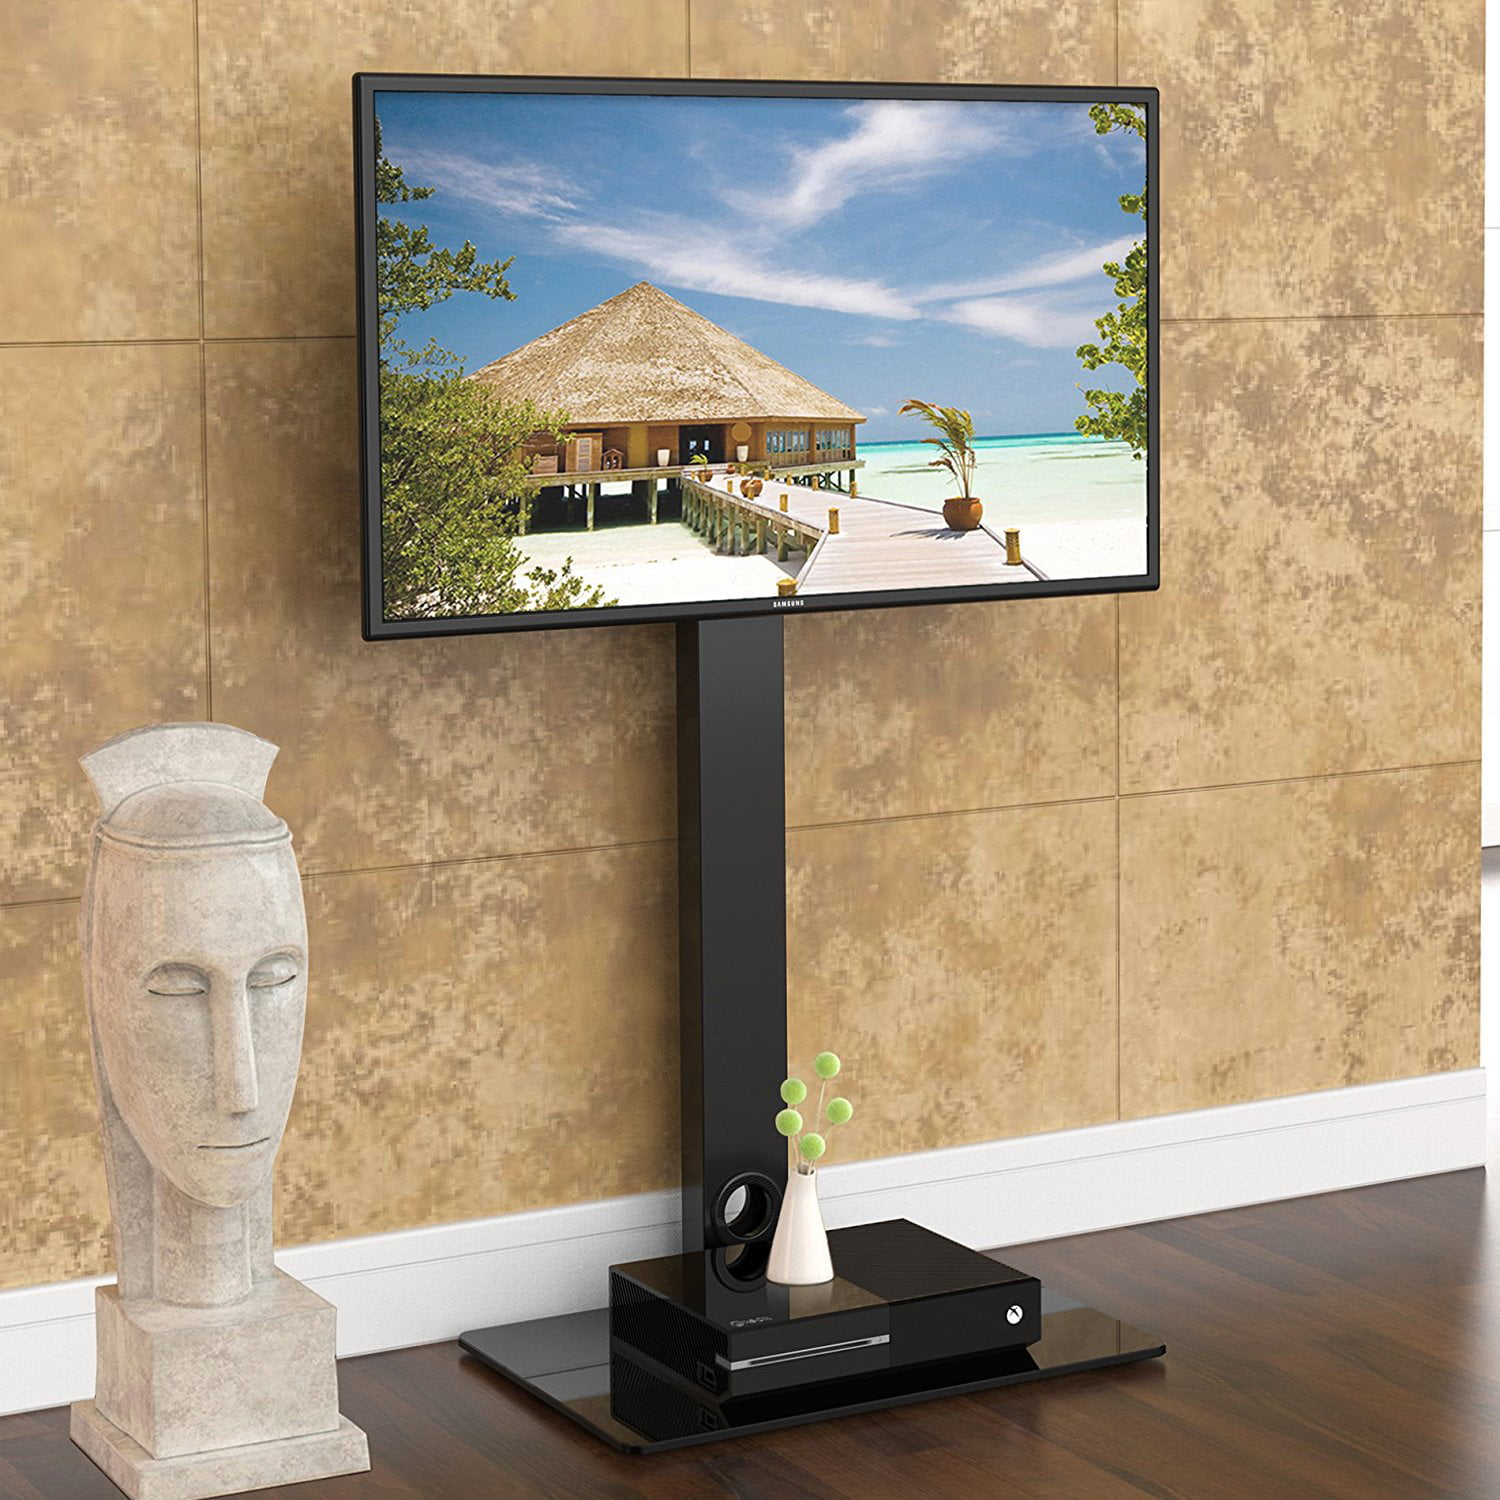 Fitueyes Floor Tv Stand With Swivel Mount For 32 To 55 Inch Tvs